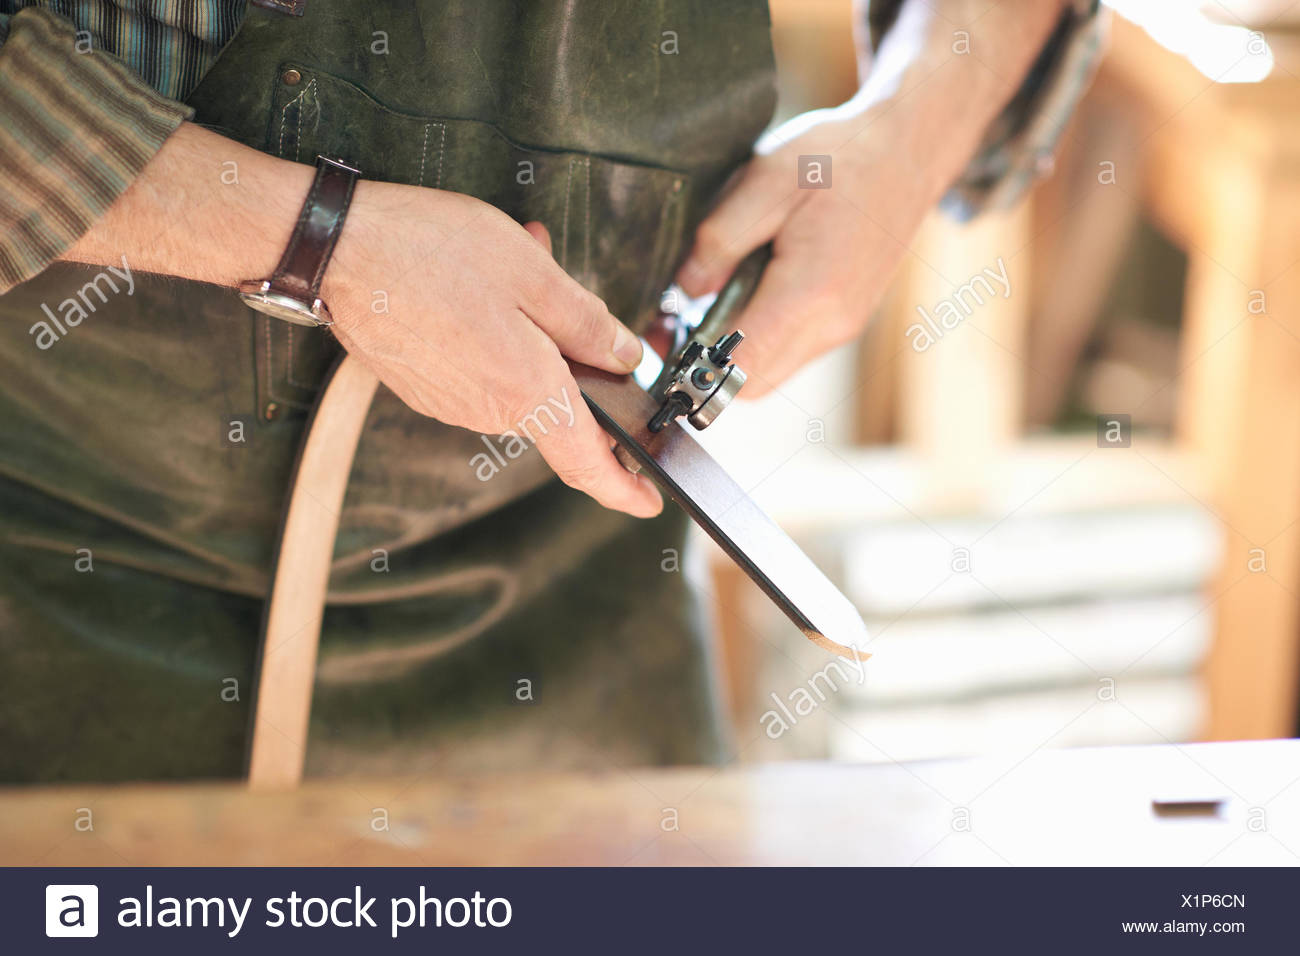 Male worker in leather workshop, punching holes in leather belt, mid section, close-up Stock Photo